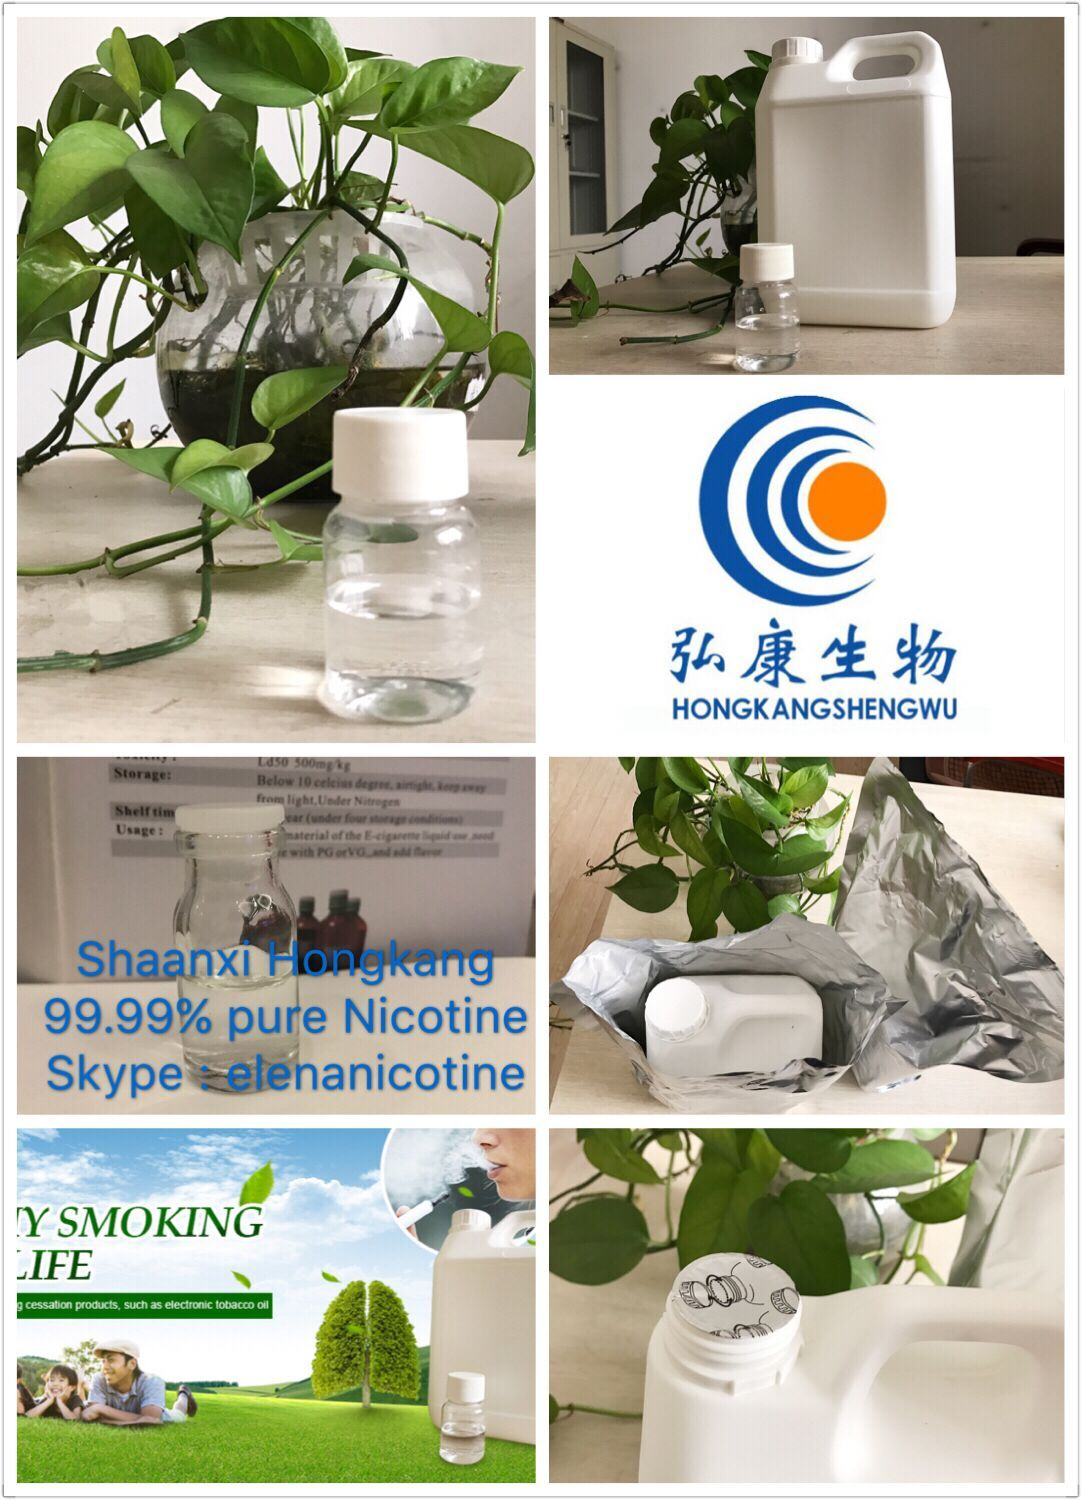 L nicotine 99.99% ( 1000mg/ml) from factory